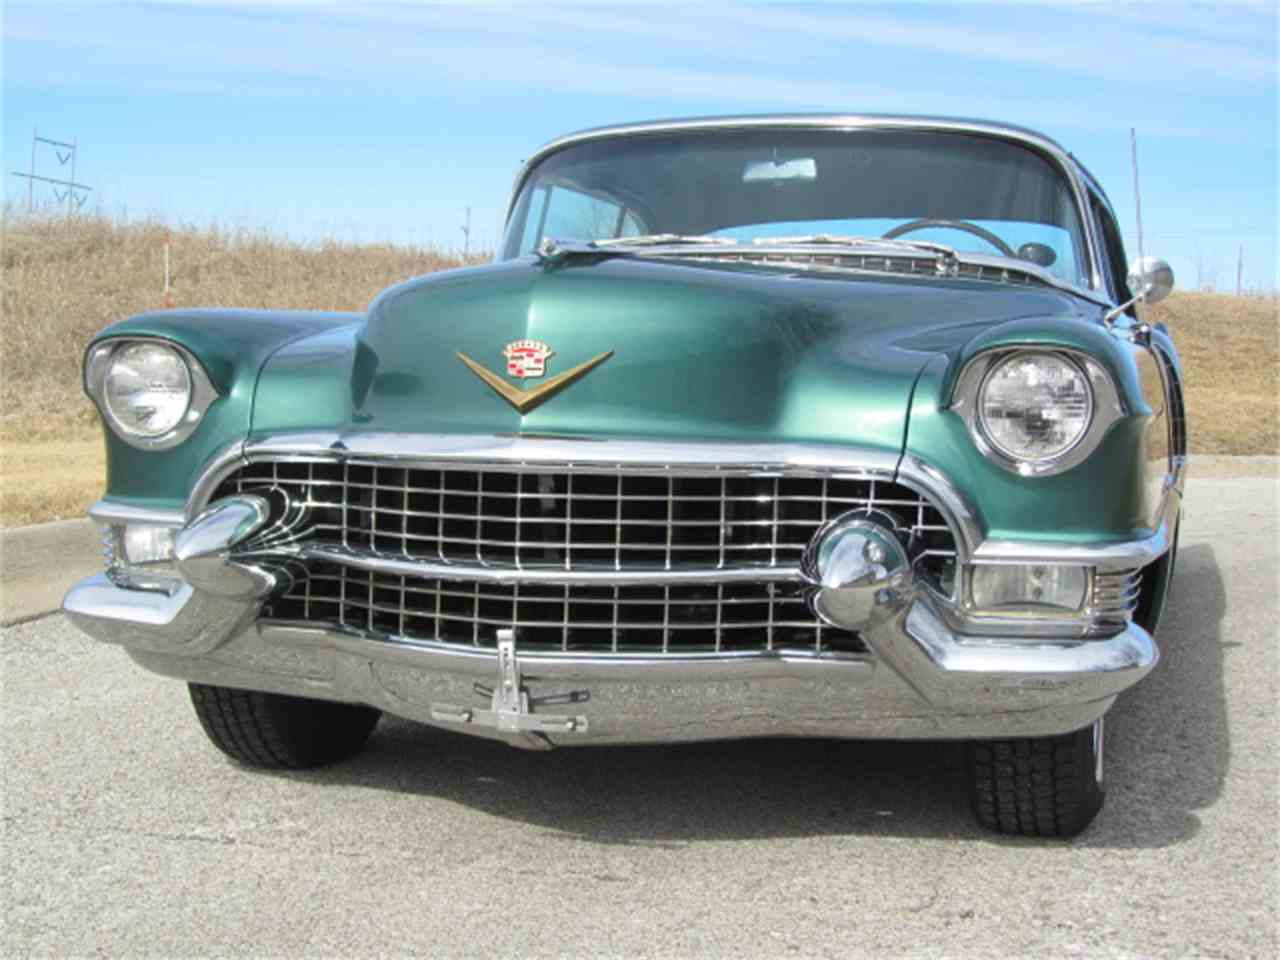 1956 cadillac deville for sale on classiccars com 9 - 1955 Cadillac Series 62 Coupe Deville 963366